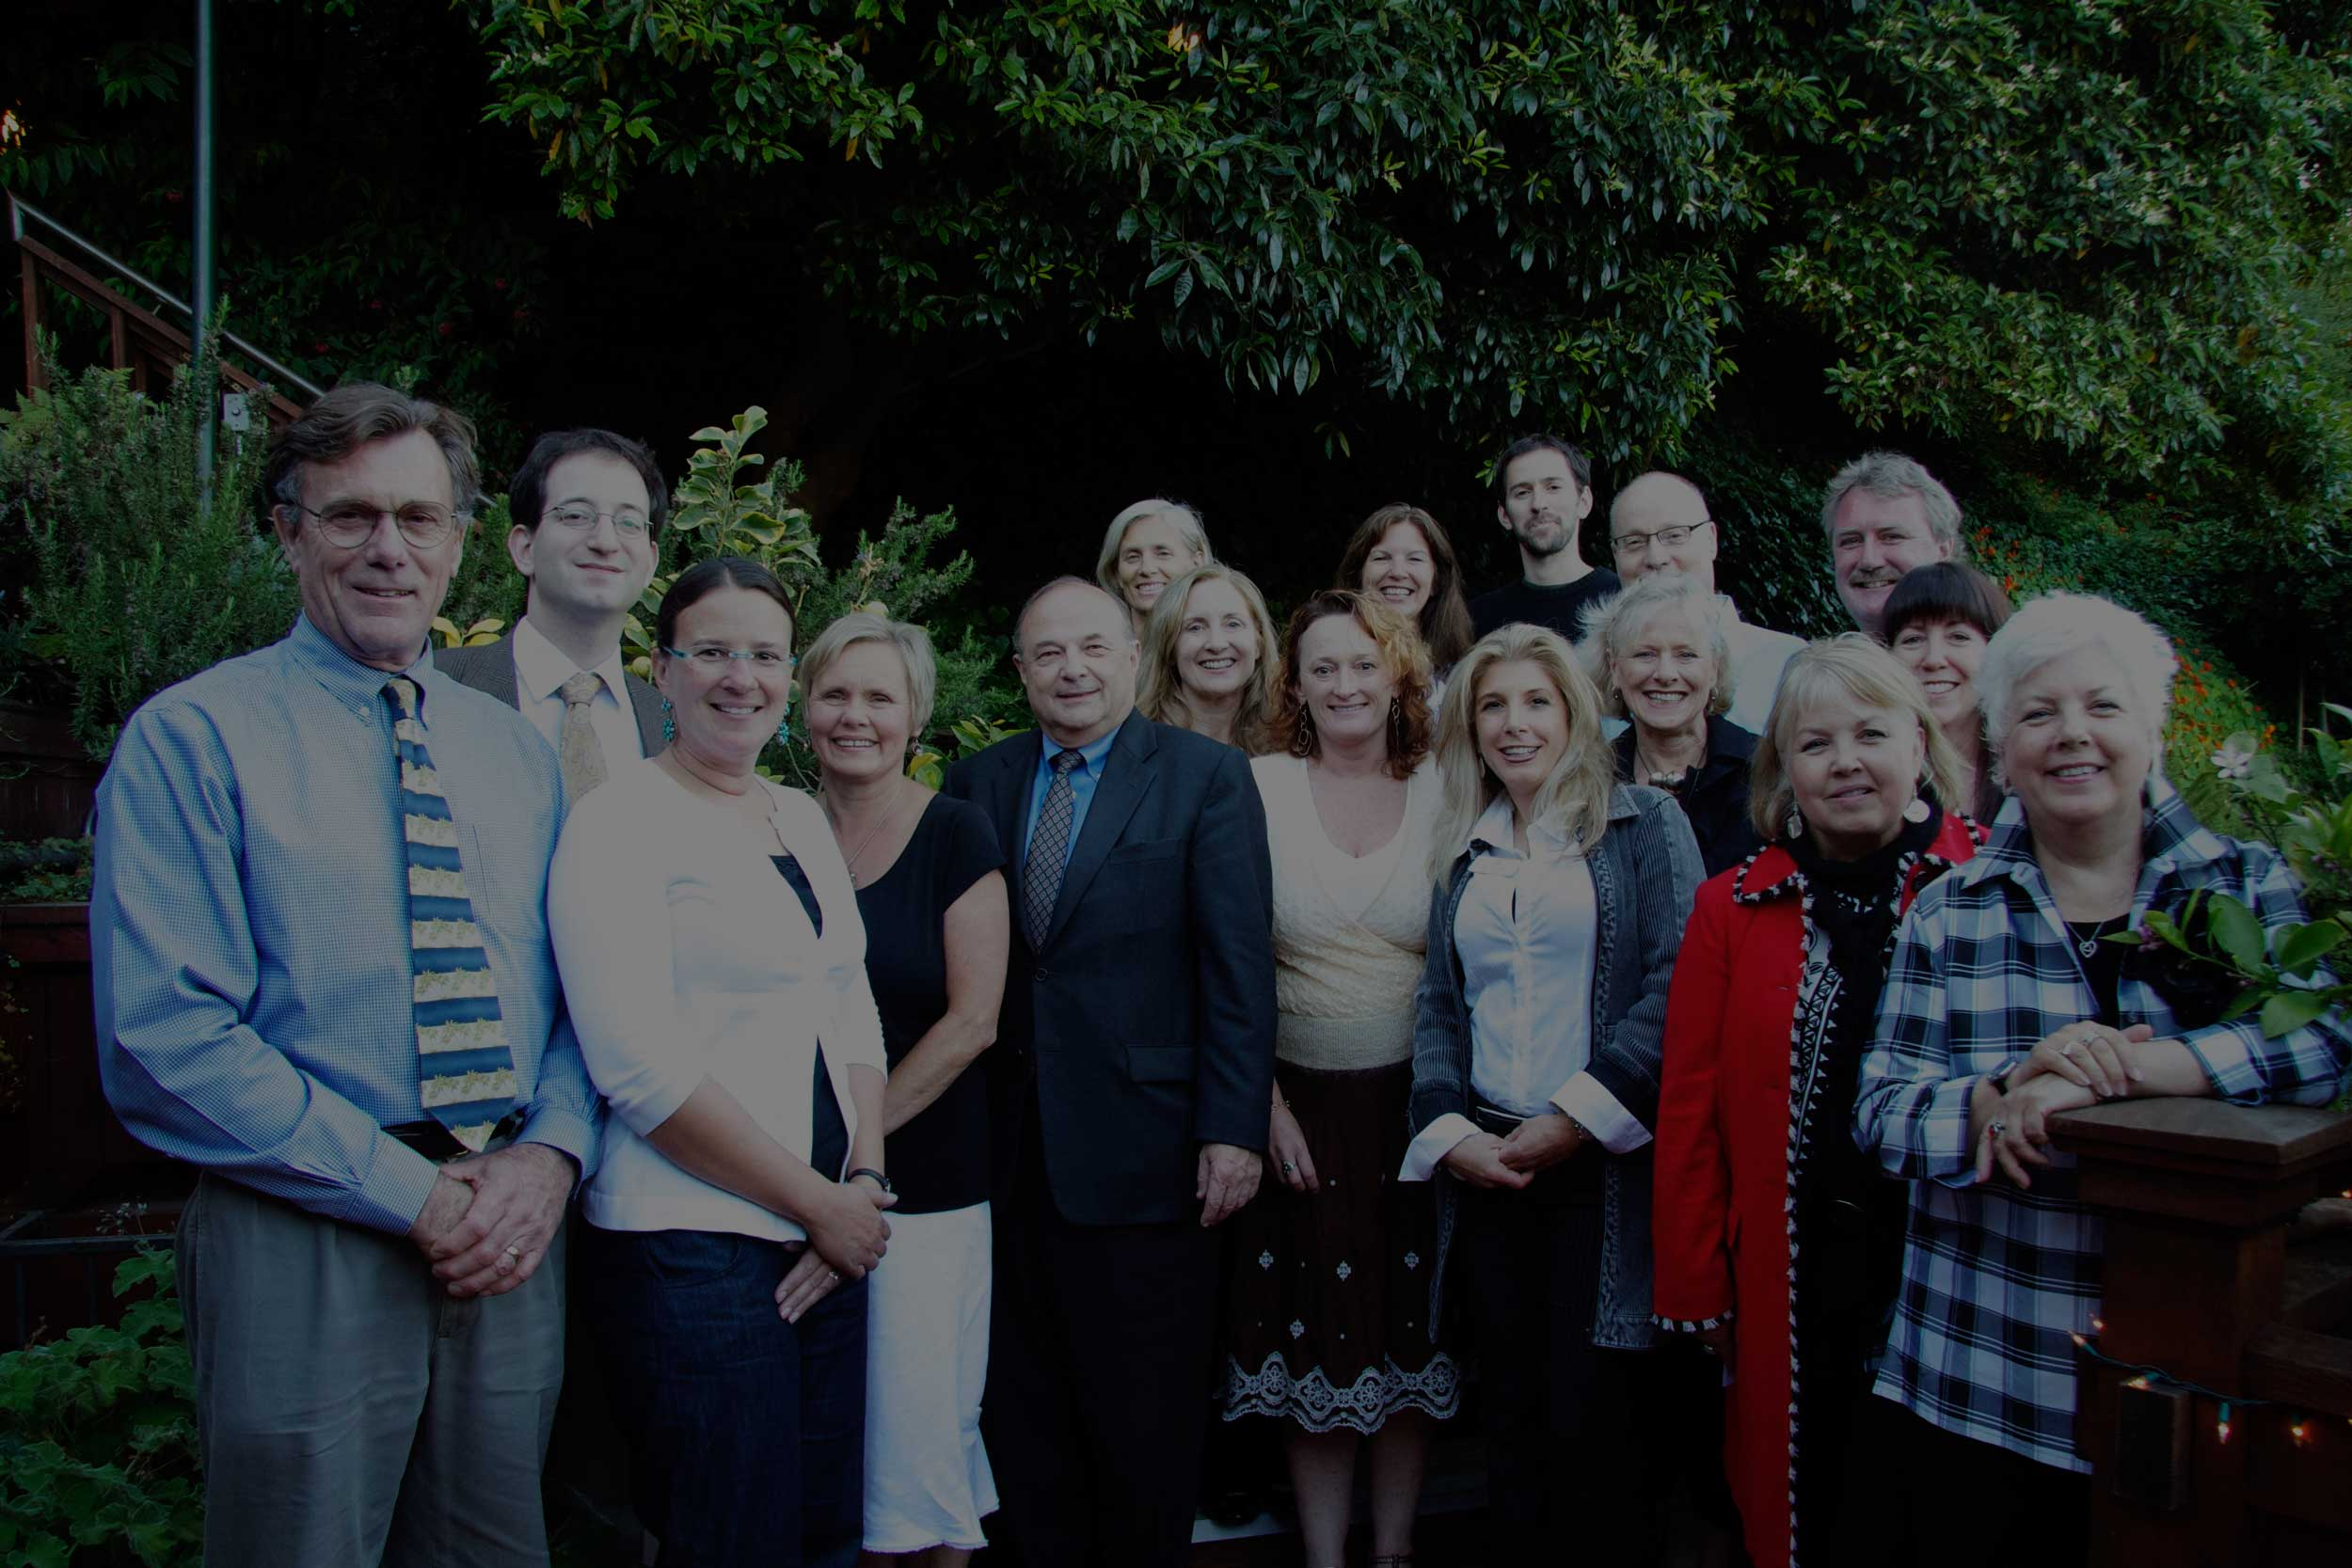 Dedicated to improving the quality of life for people living with cancer in the Santa Cruz area